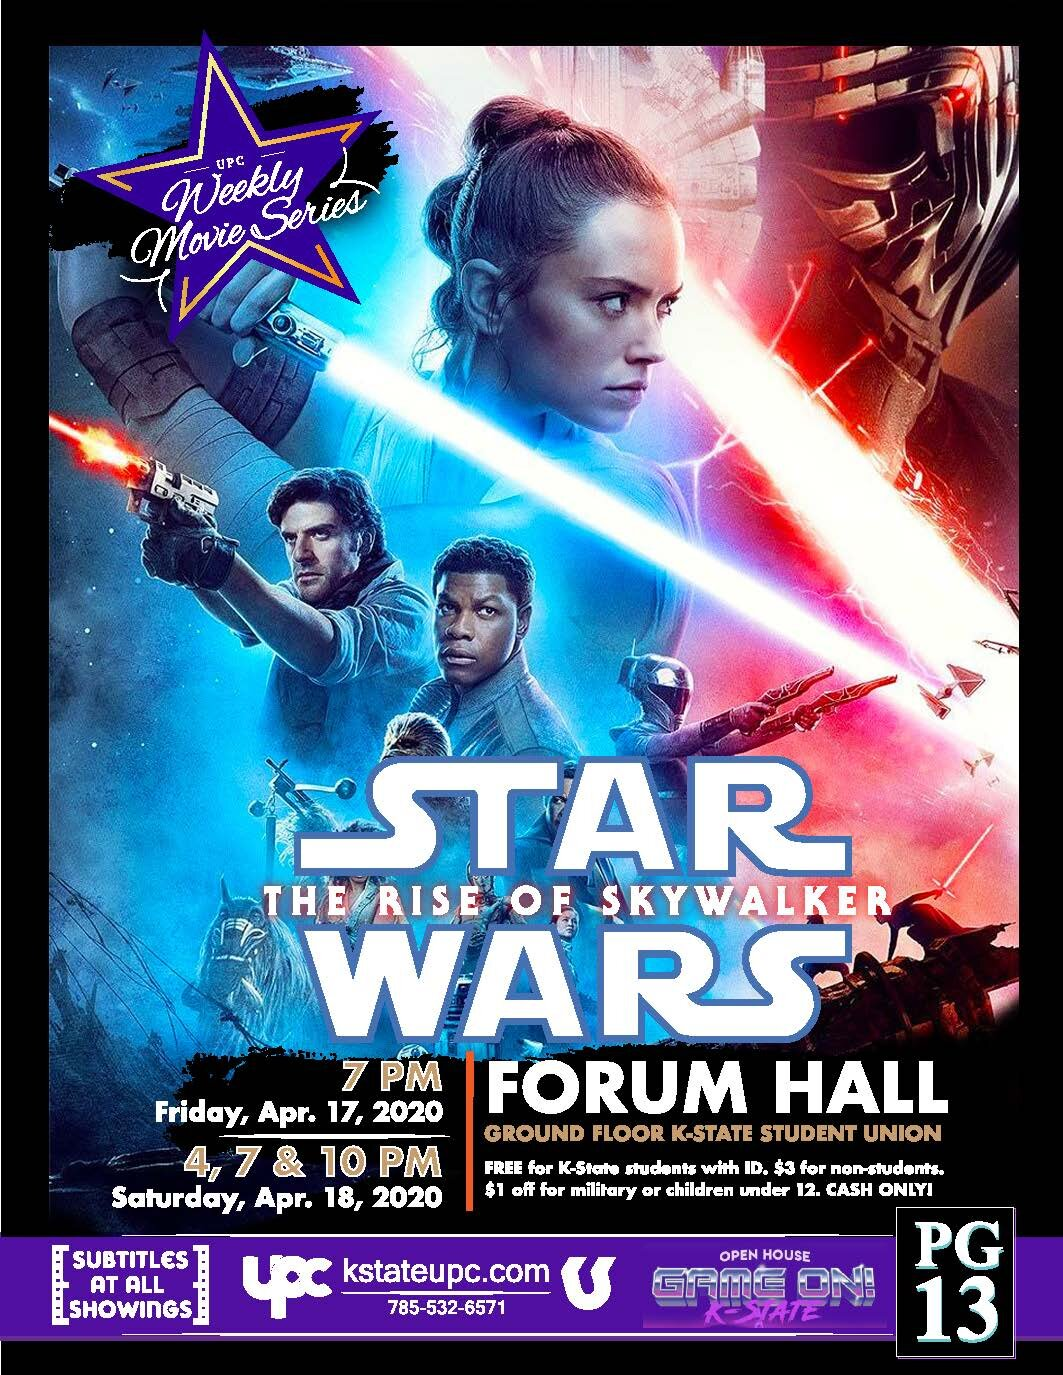 Canceled Film Star Wars The Rise Of Skywalker Pg 13 K State Student Union Program Council